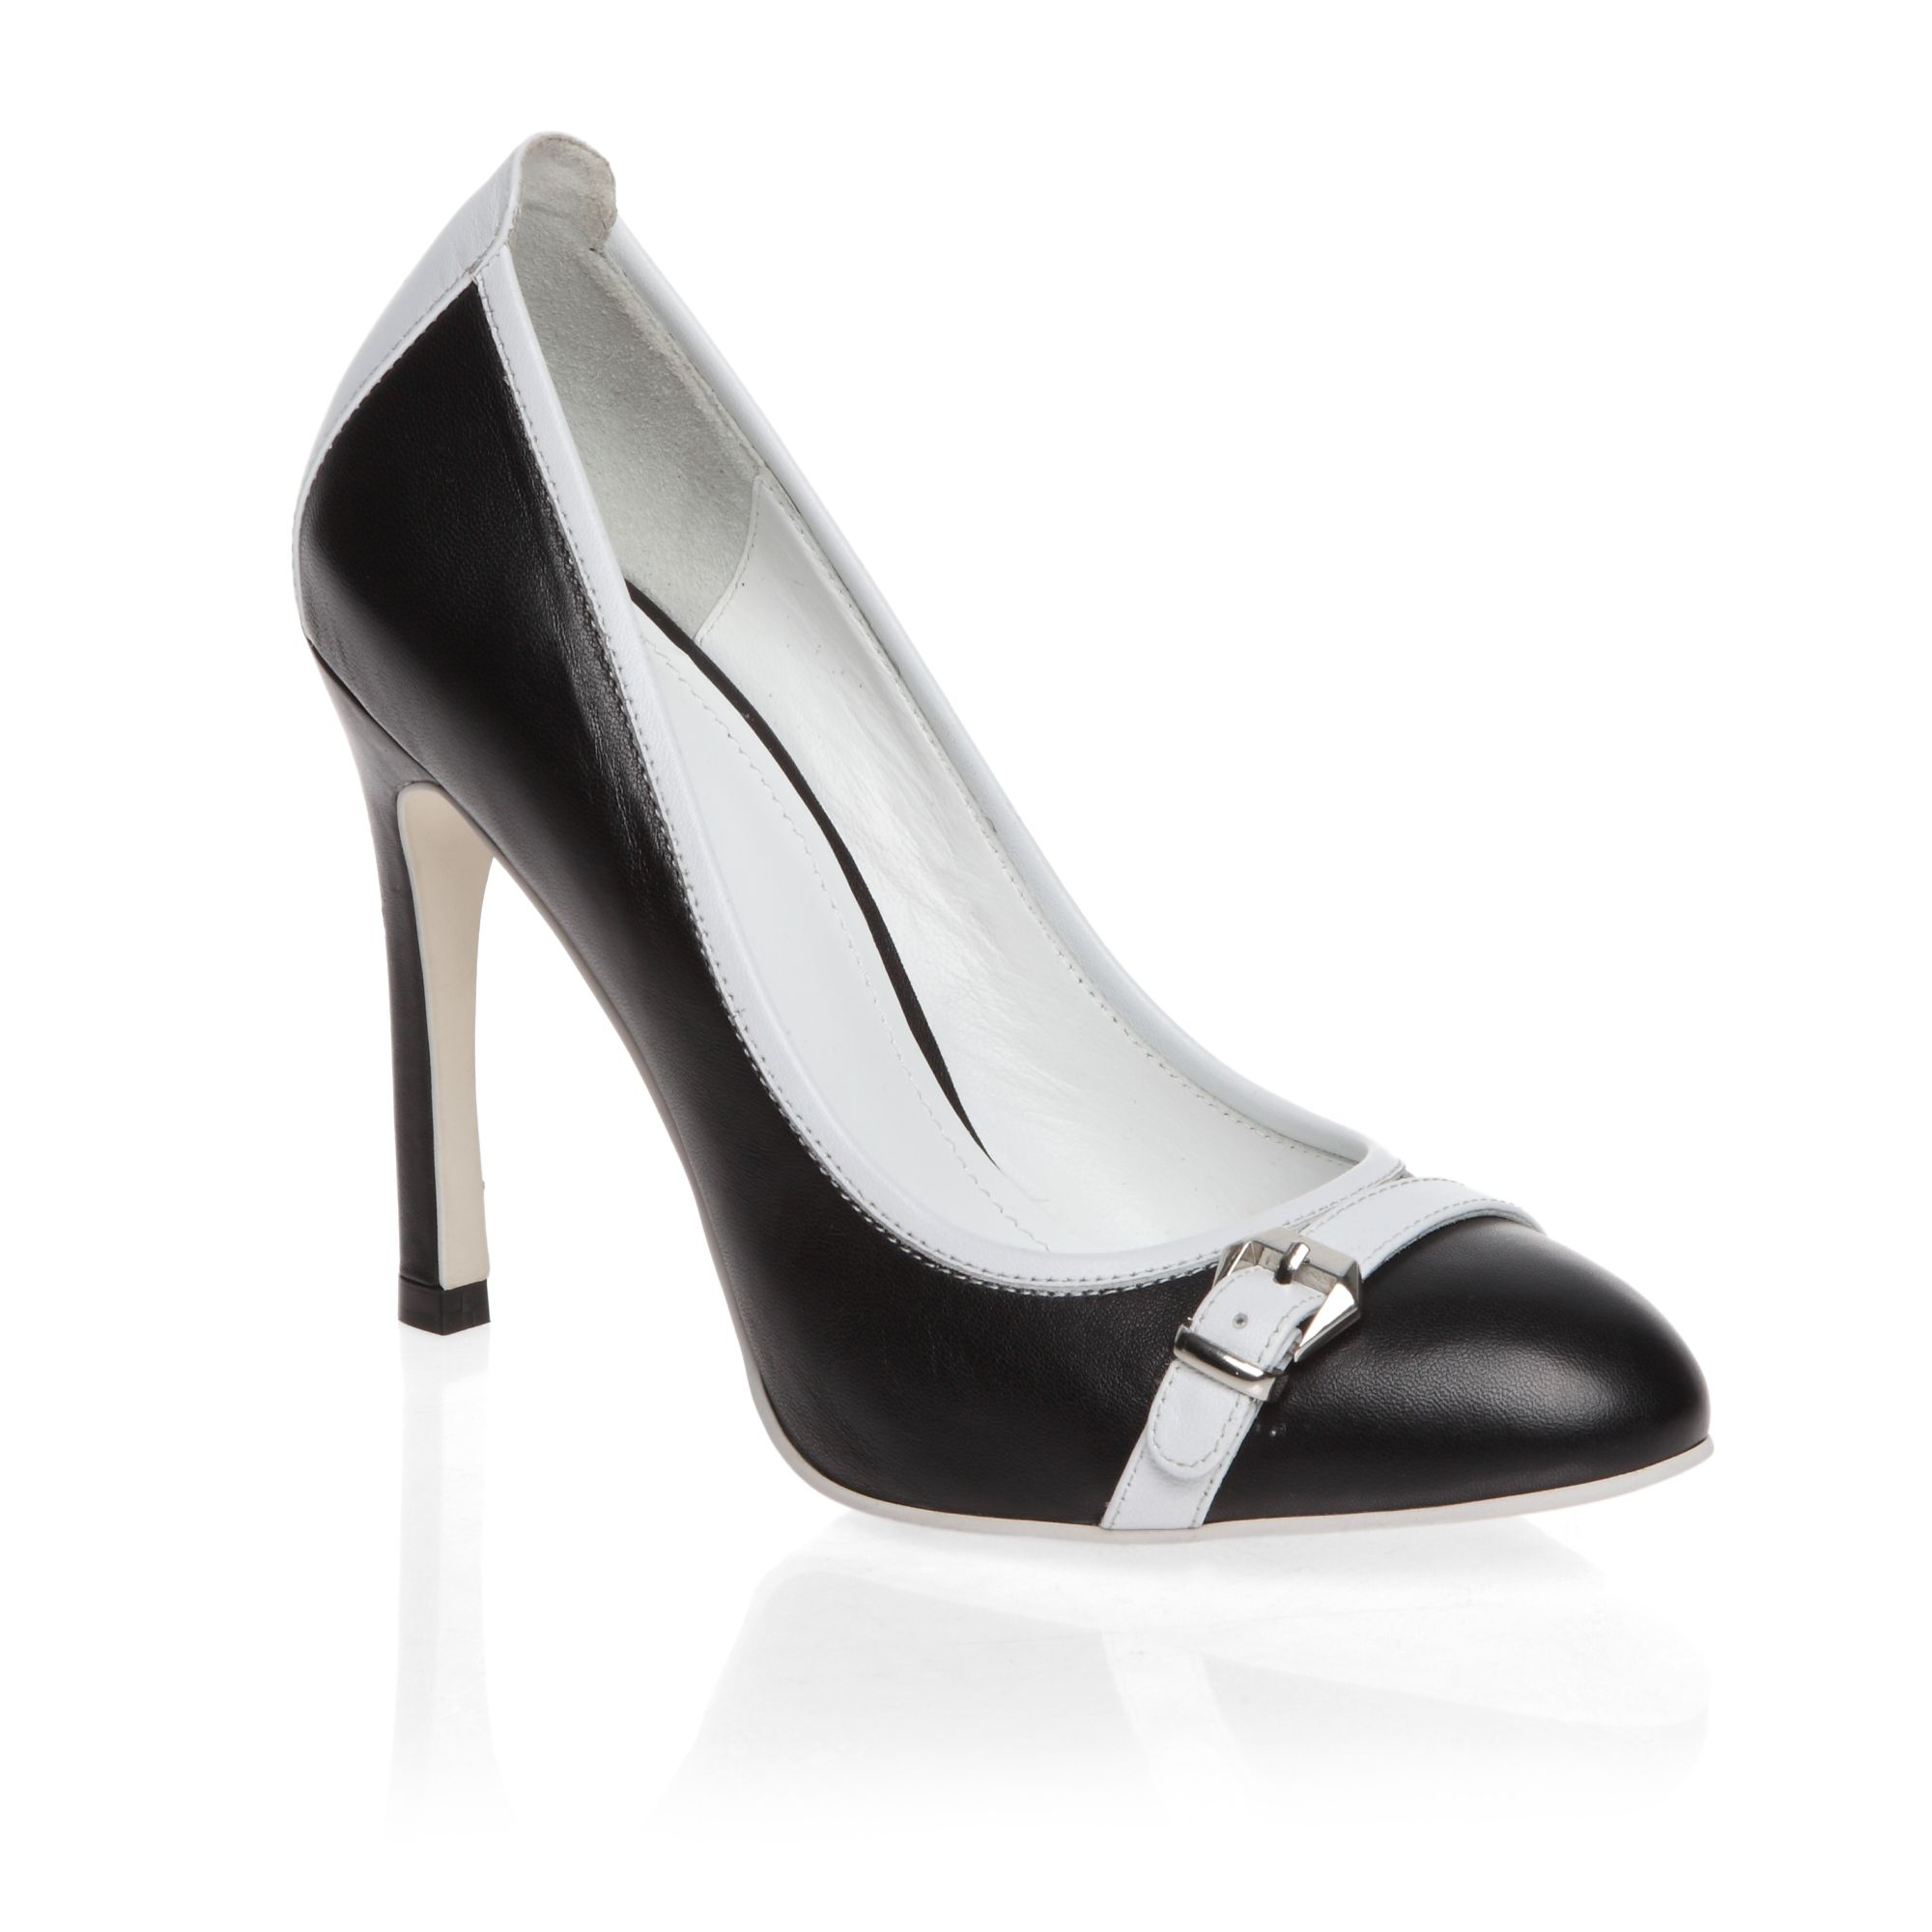 High heeled round toe patent court shoes